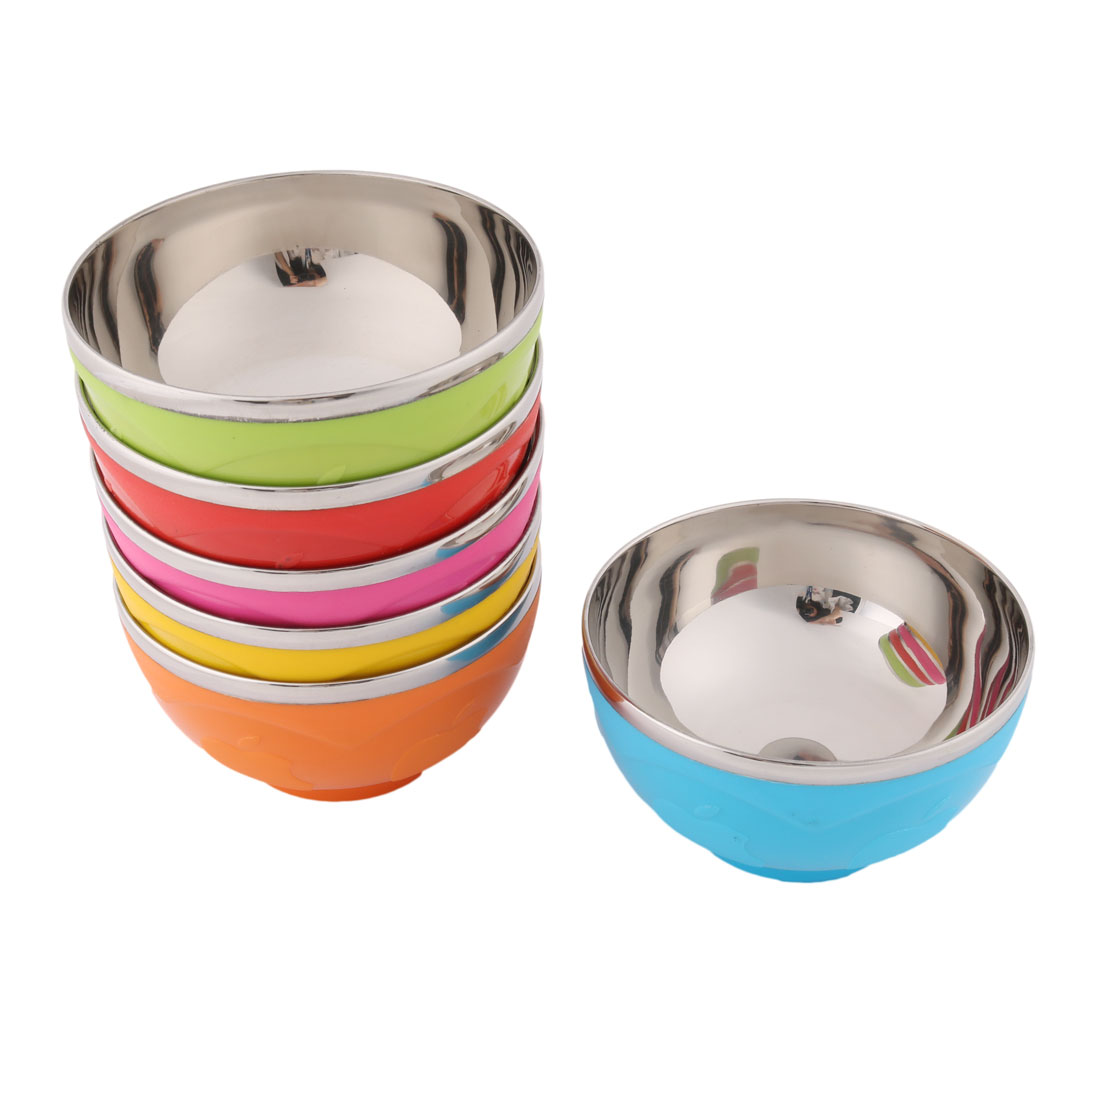 Household Stainless Steel Apple Pattern Rice Soup Bowl Assorted Color 15cm Diameter 6 Pcs